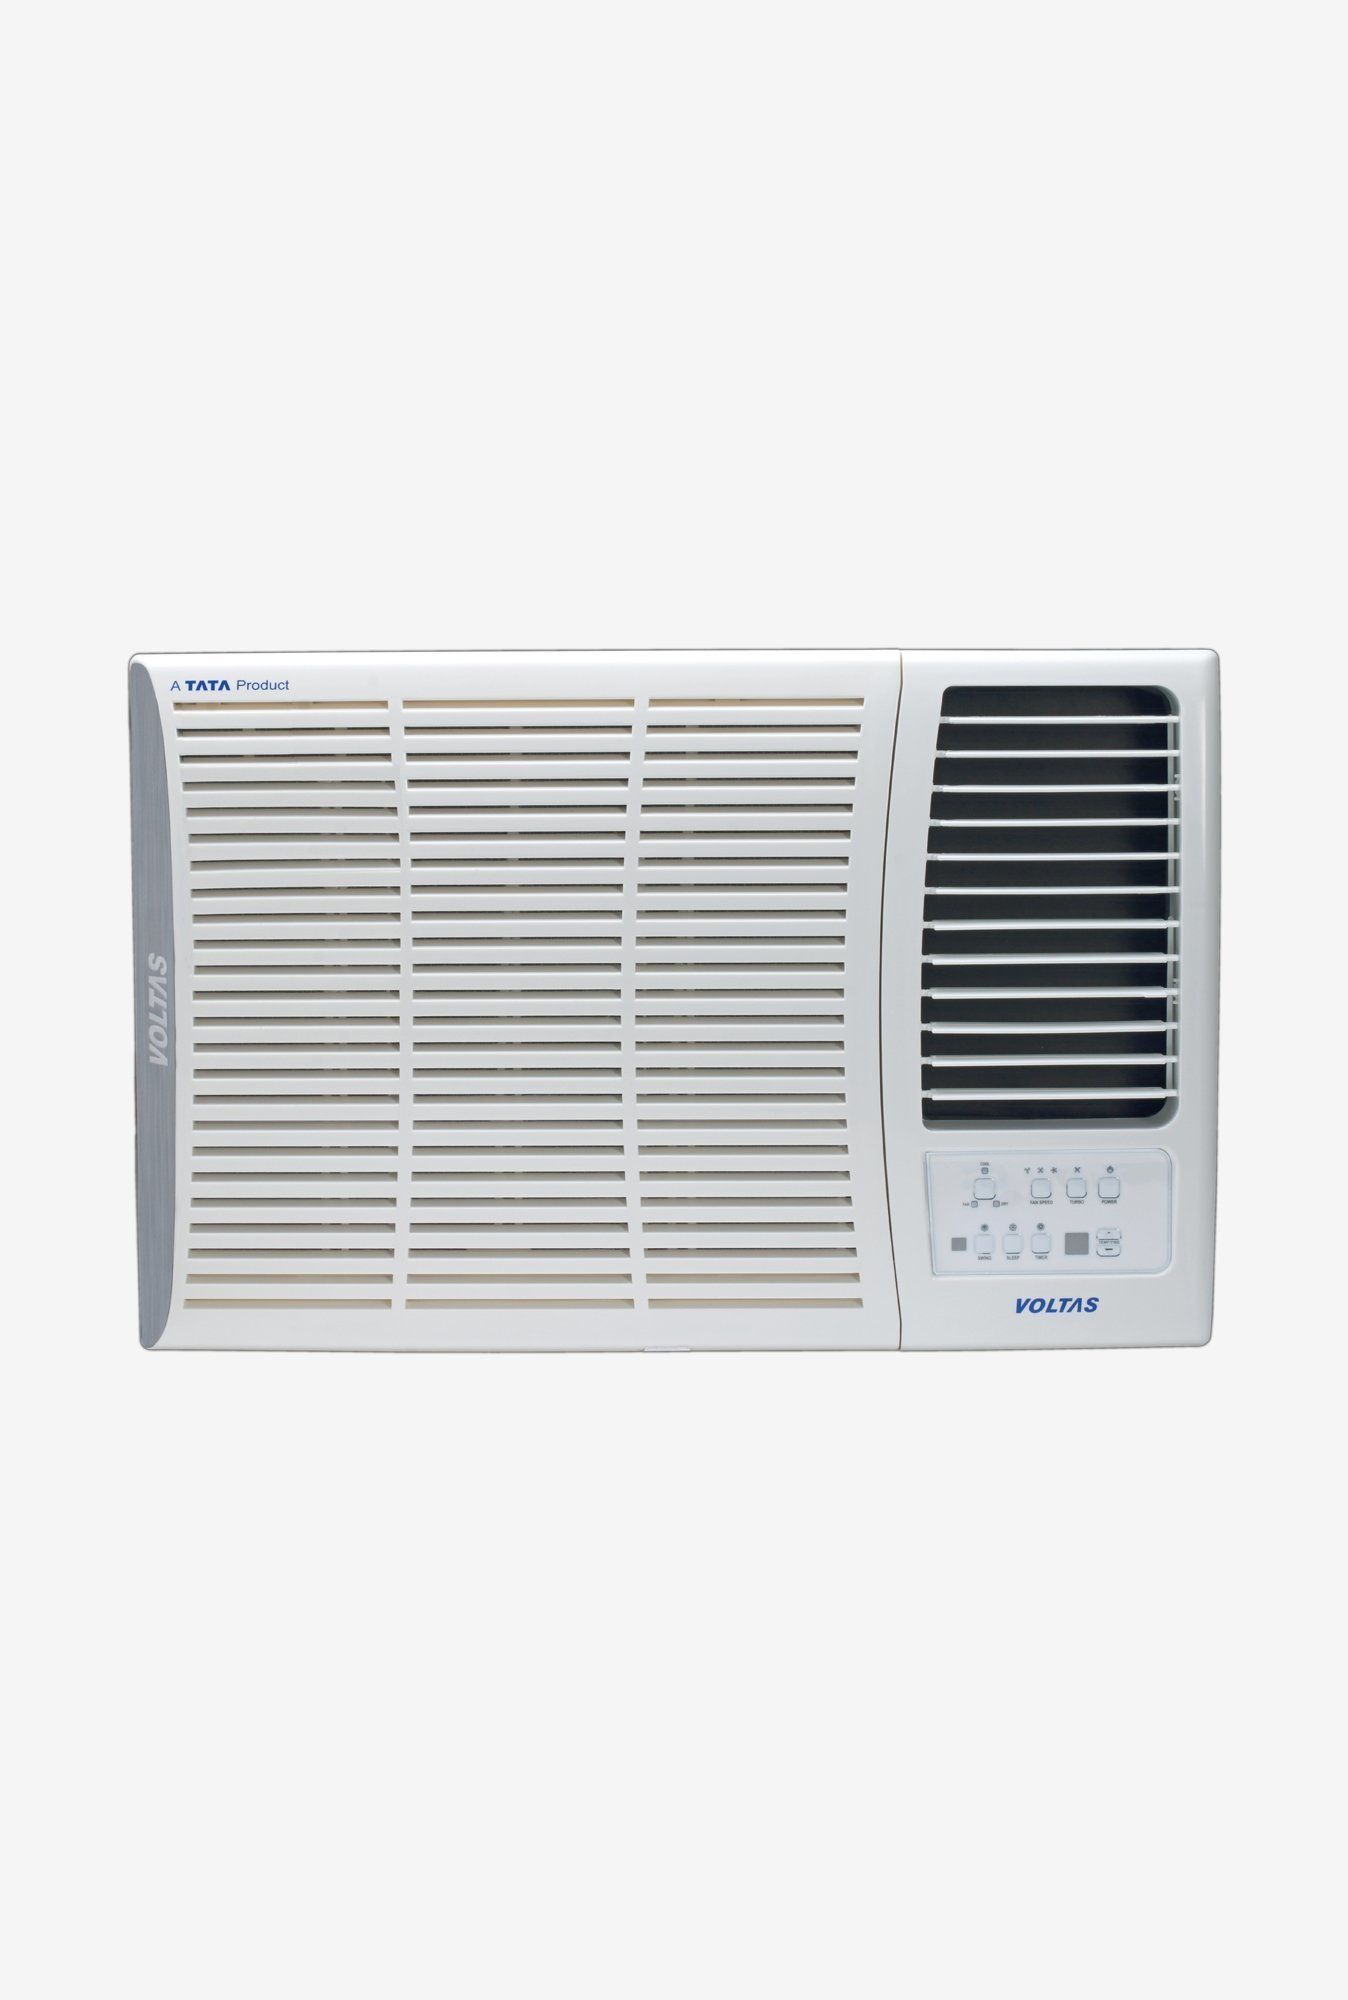 Voltas 183 DYa 1.5 Ton 3 Star Window AC (White)